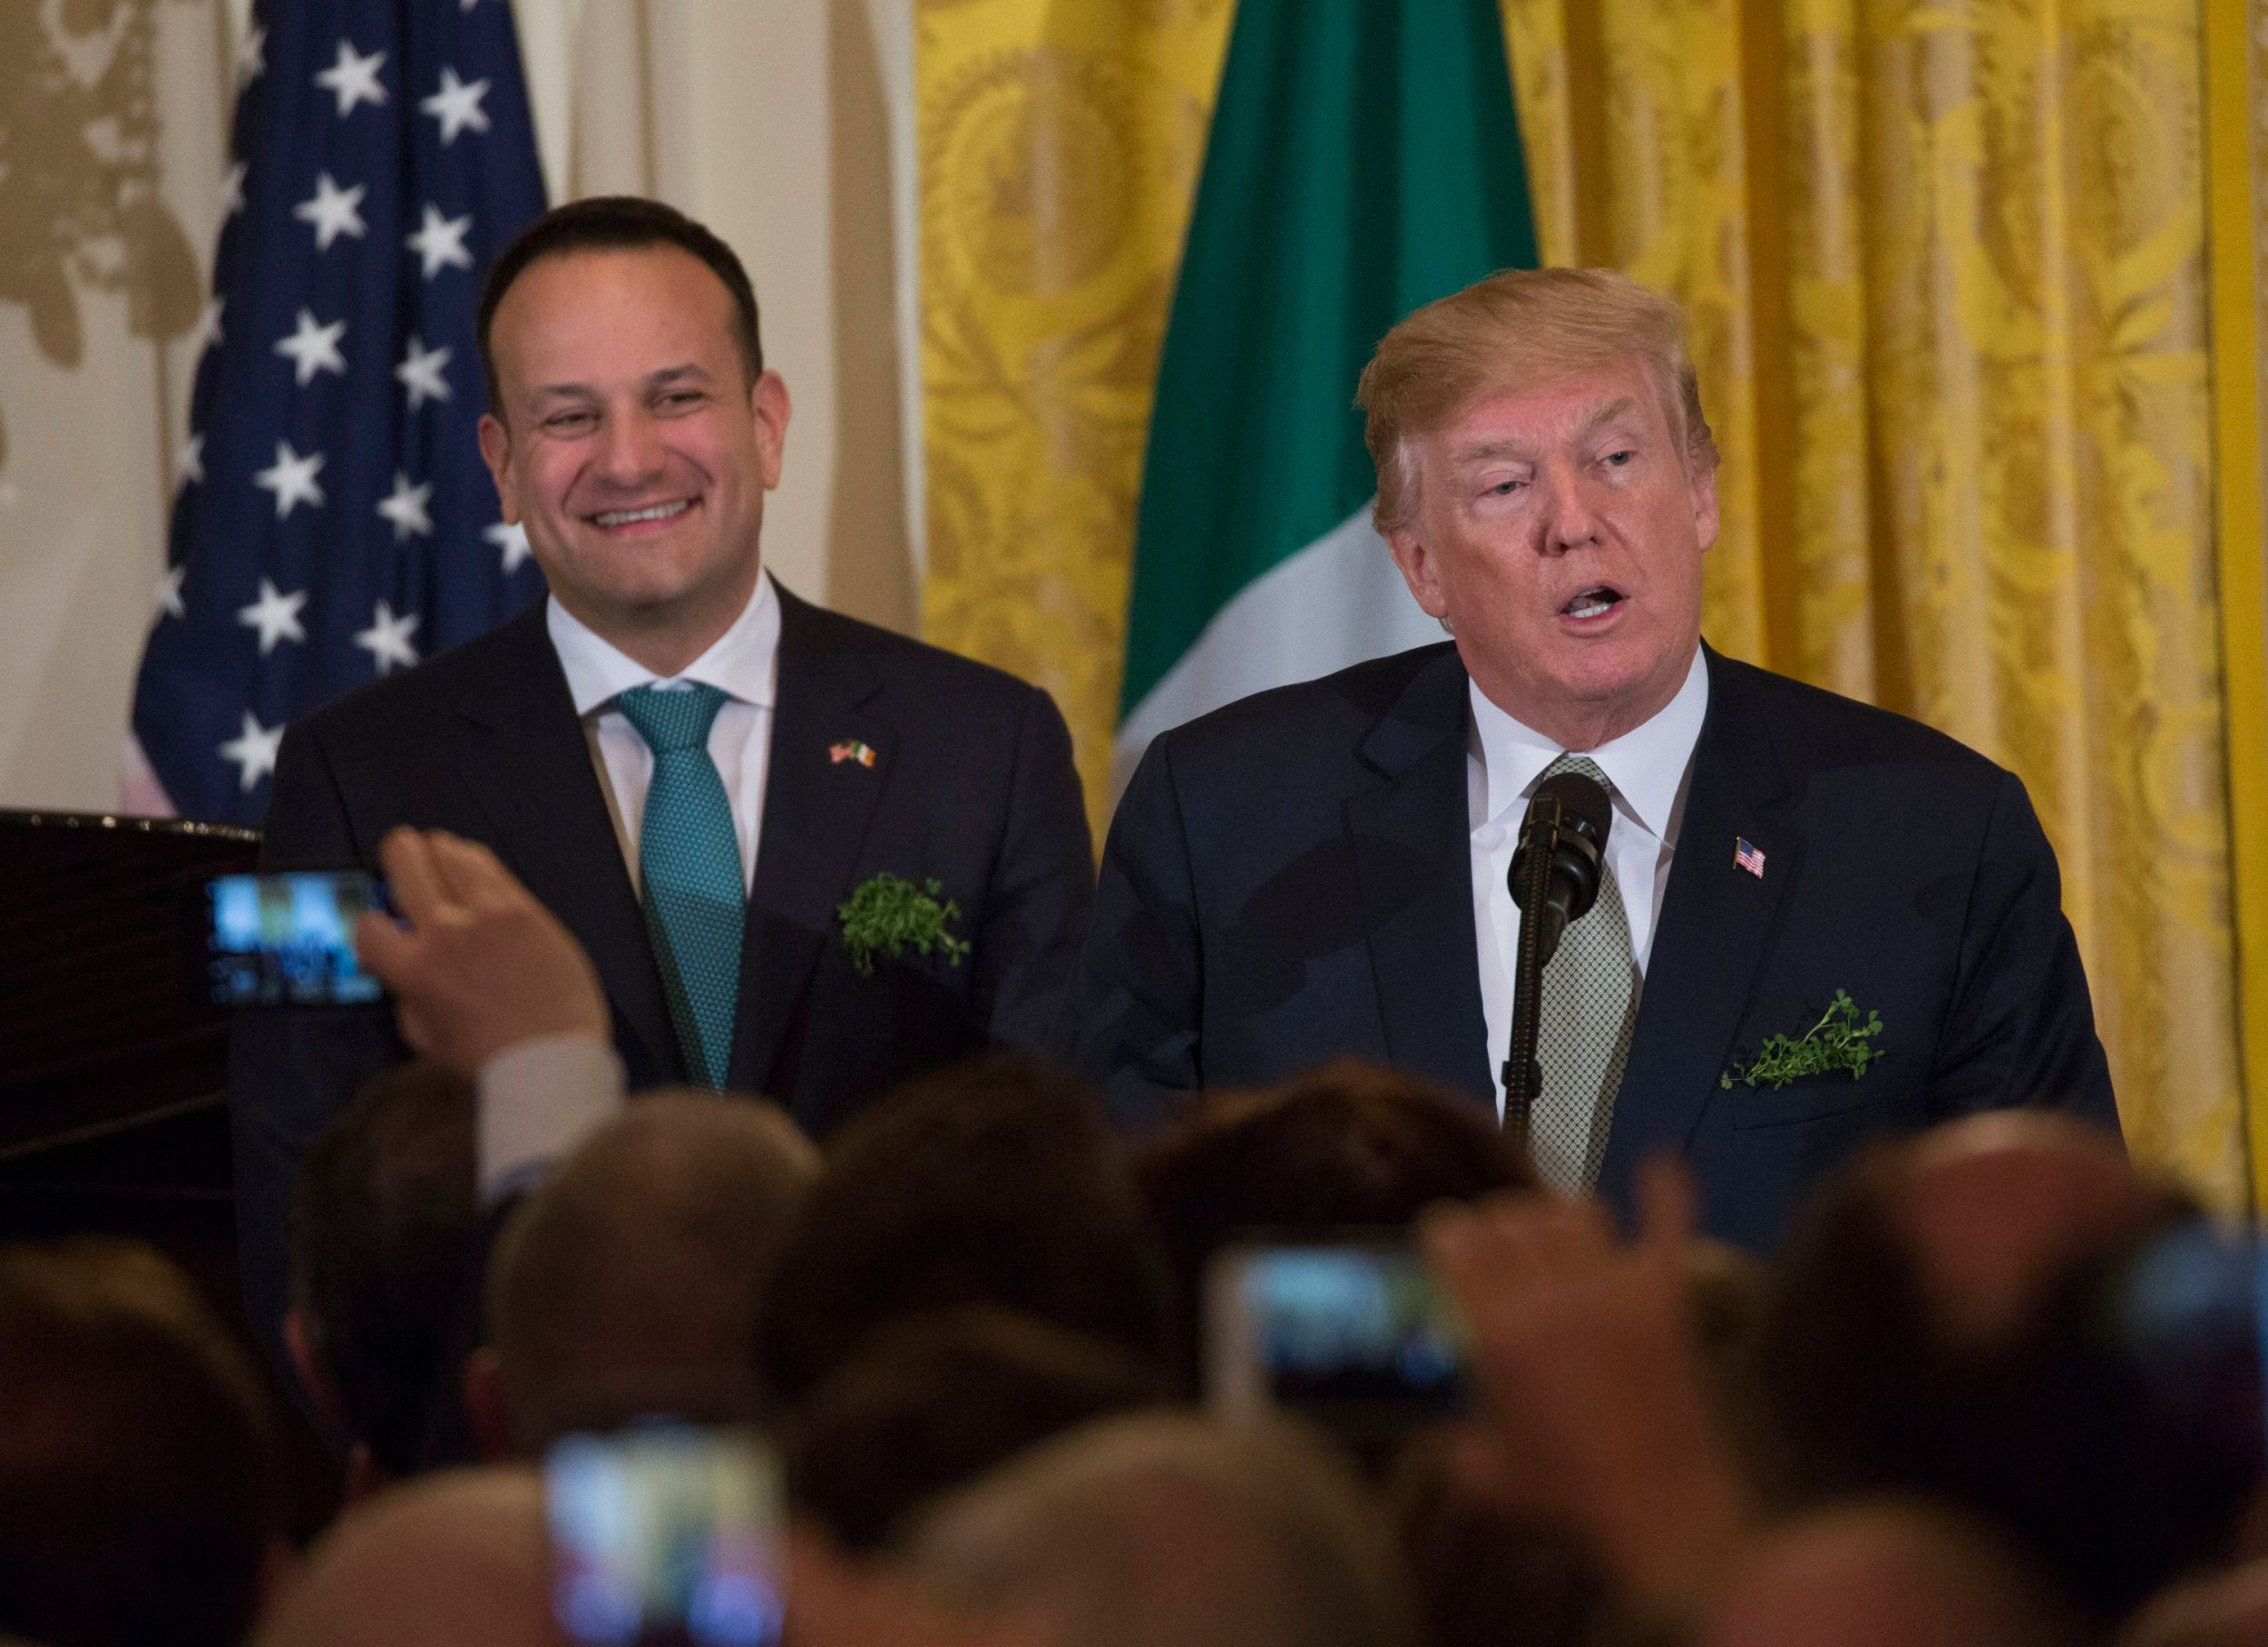 Donald Trump to visit Ireland in November